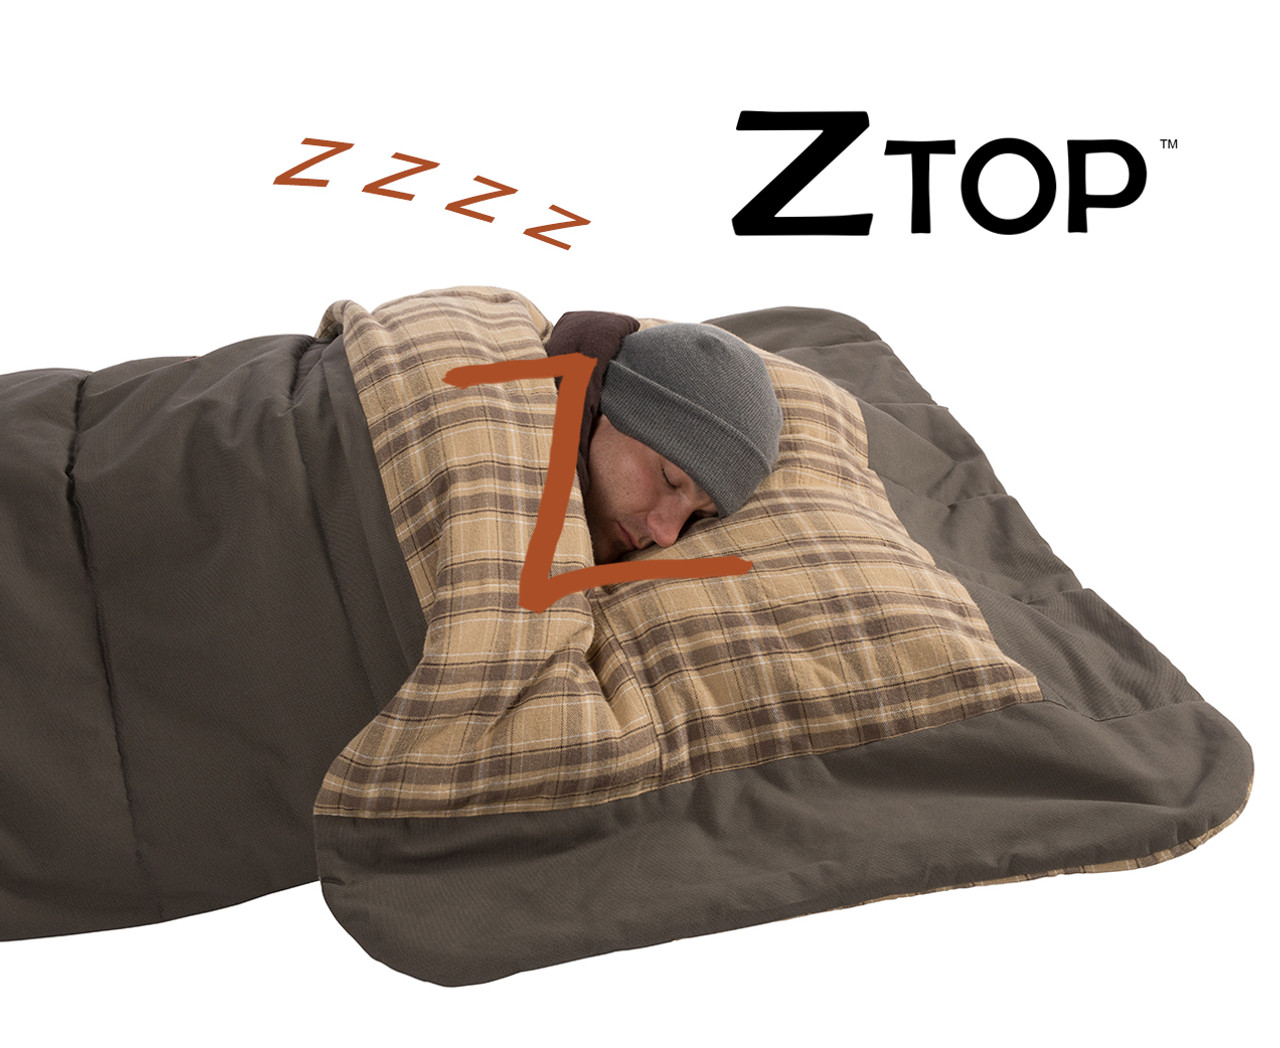 20°F XLT Z Top Sleeping Bag